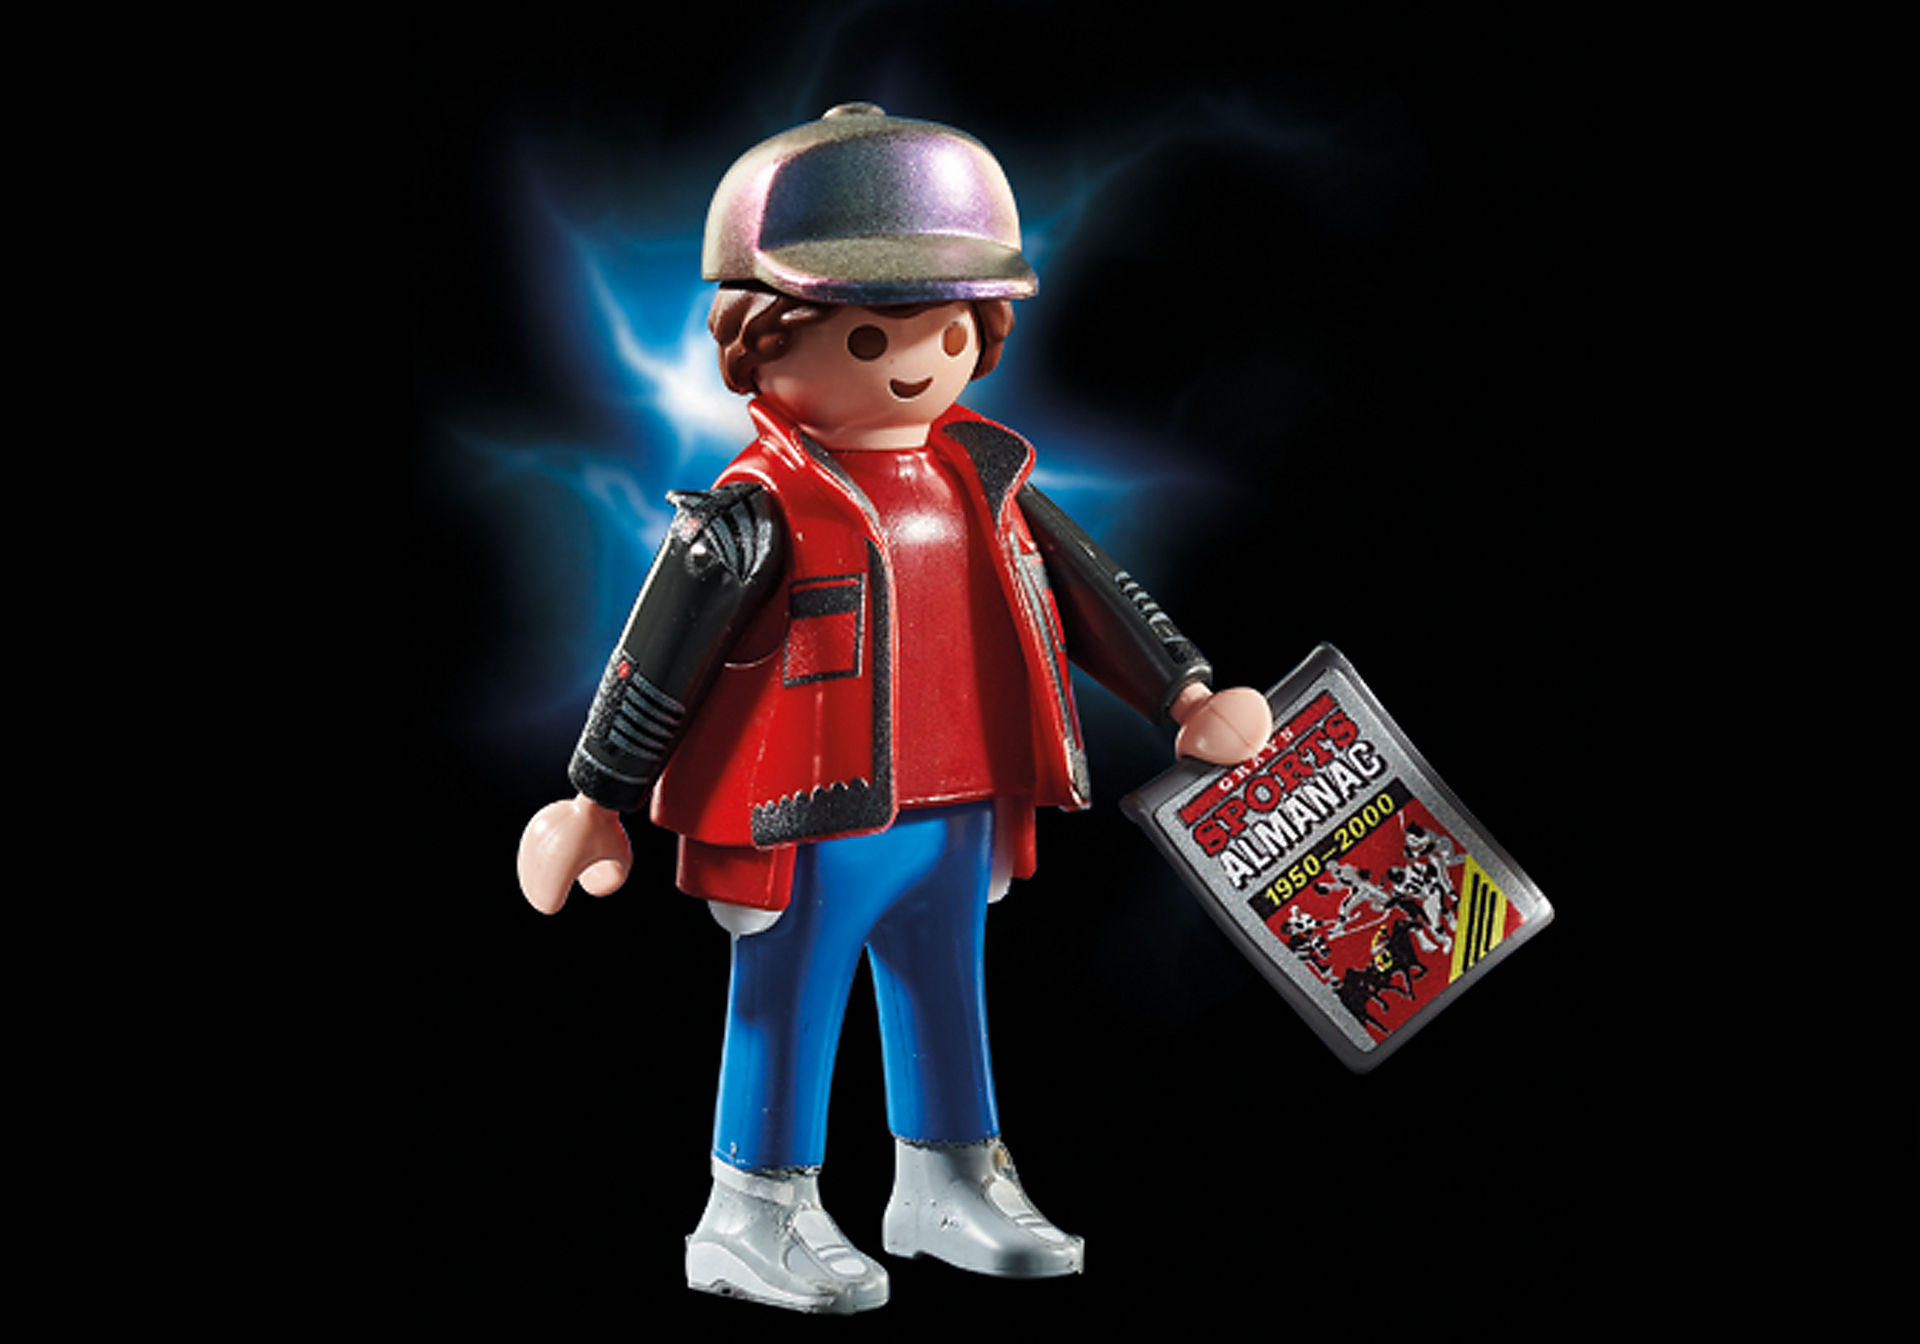 70634 Back to the Future Part II Hoverboard Chase zoom image6